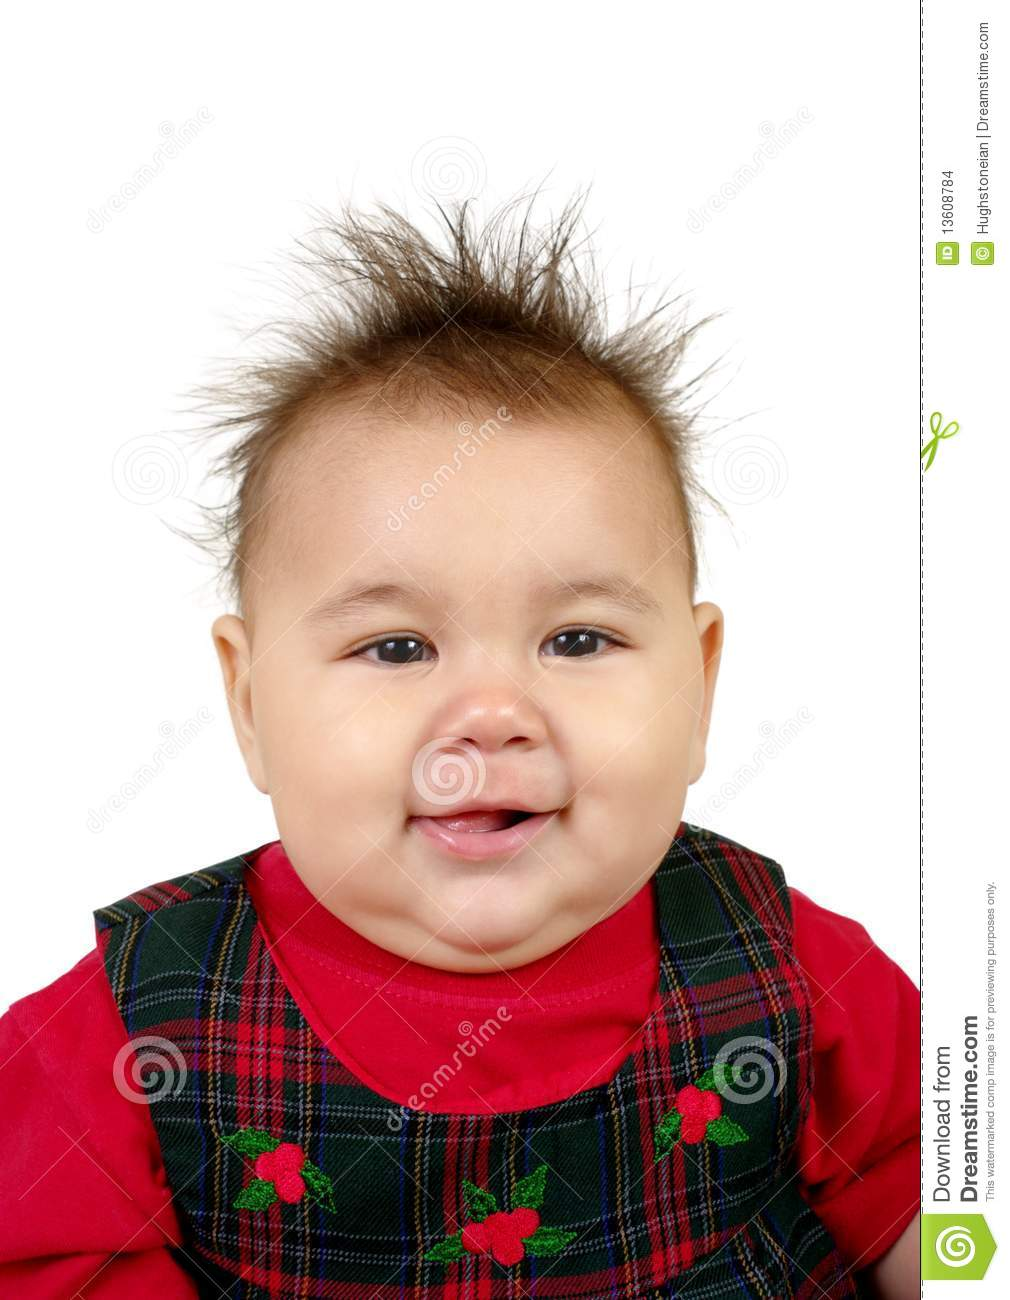 a438b2120 Kid with spiky hair stock photo. Image of holiday